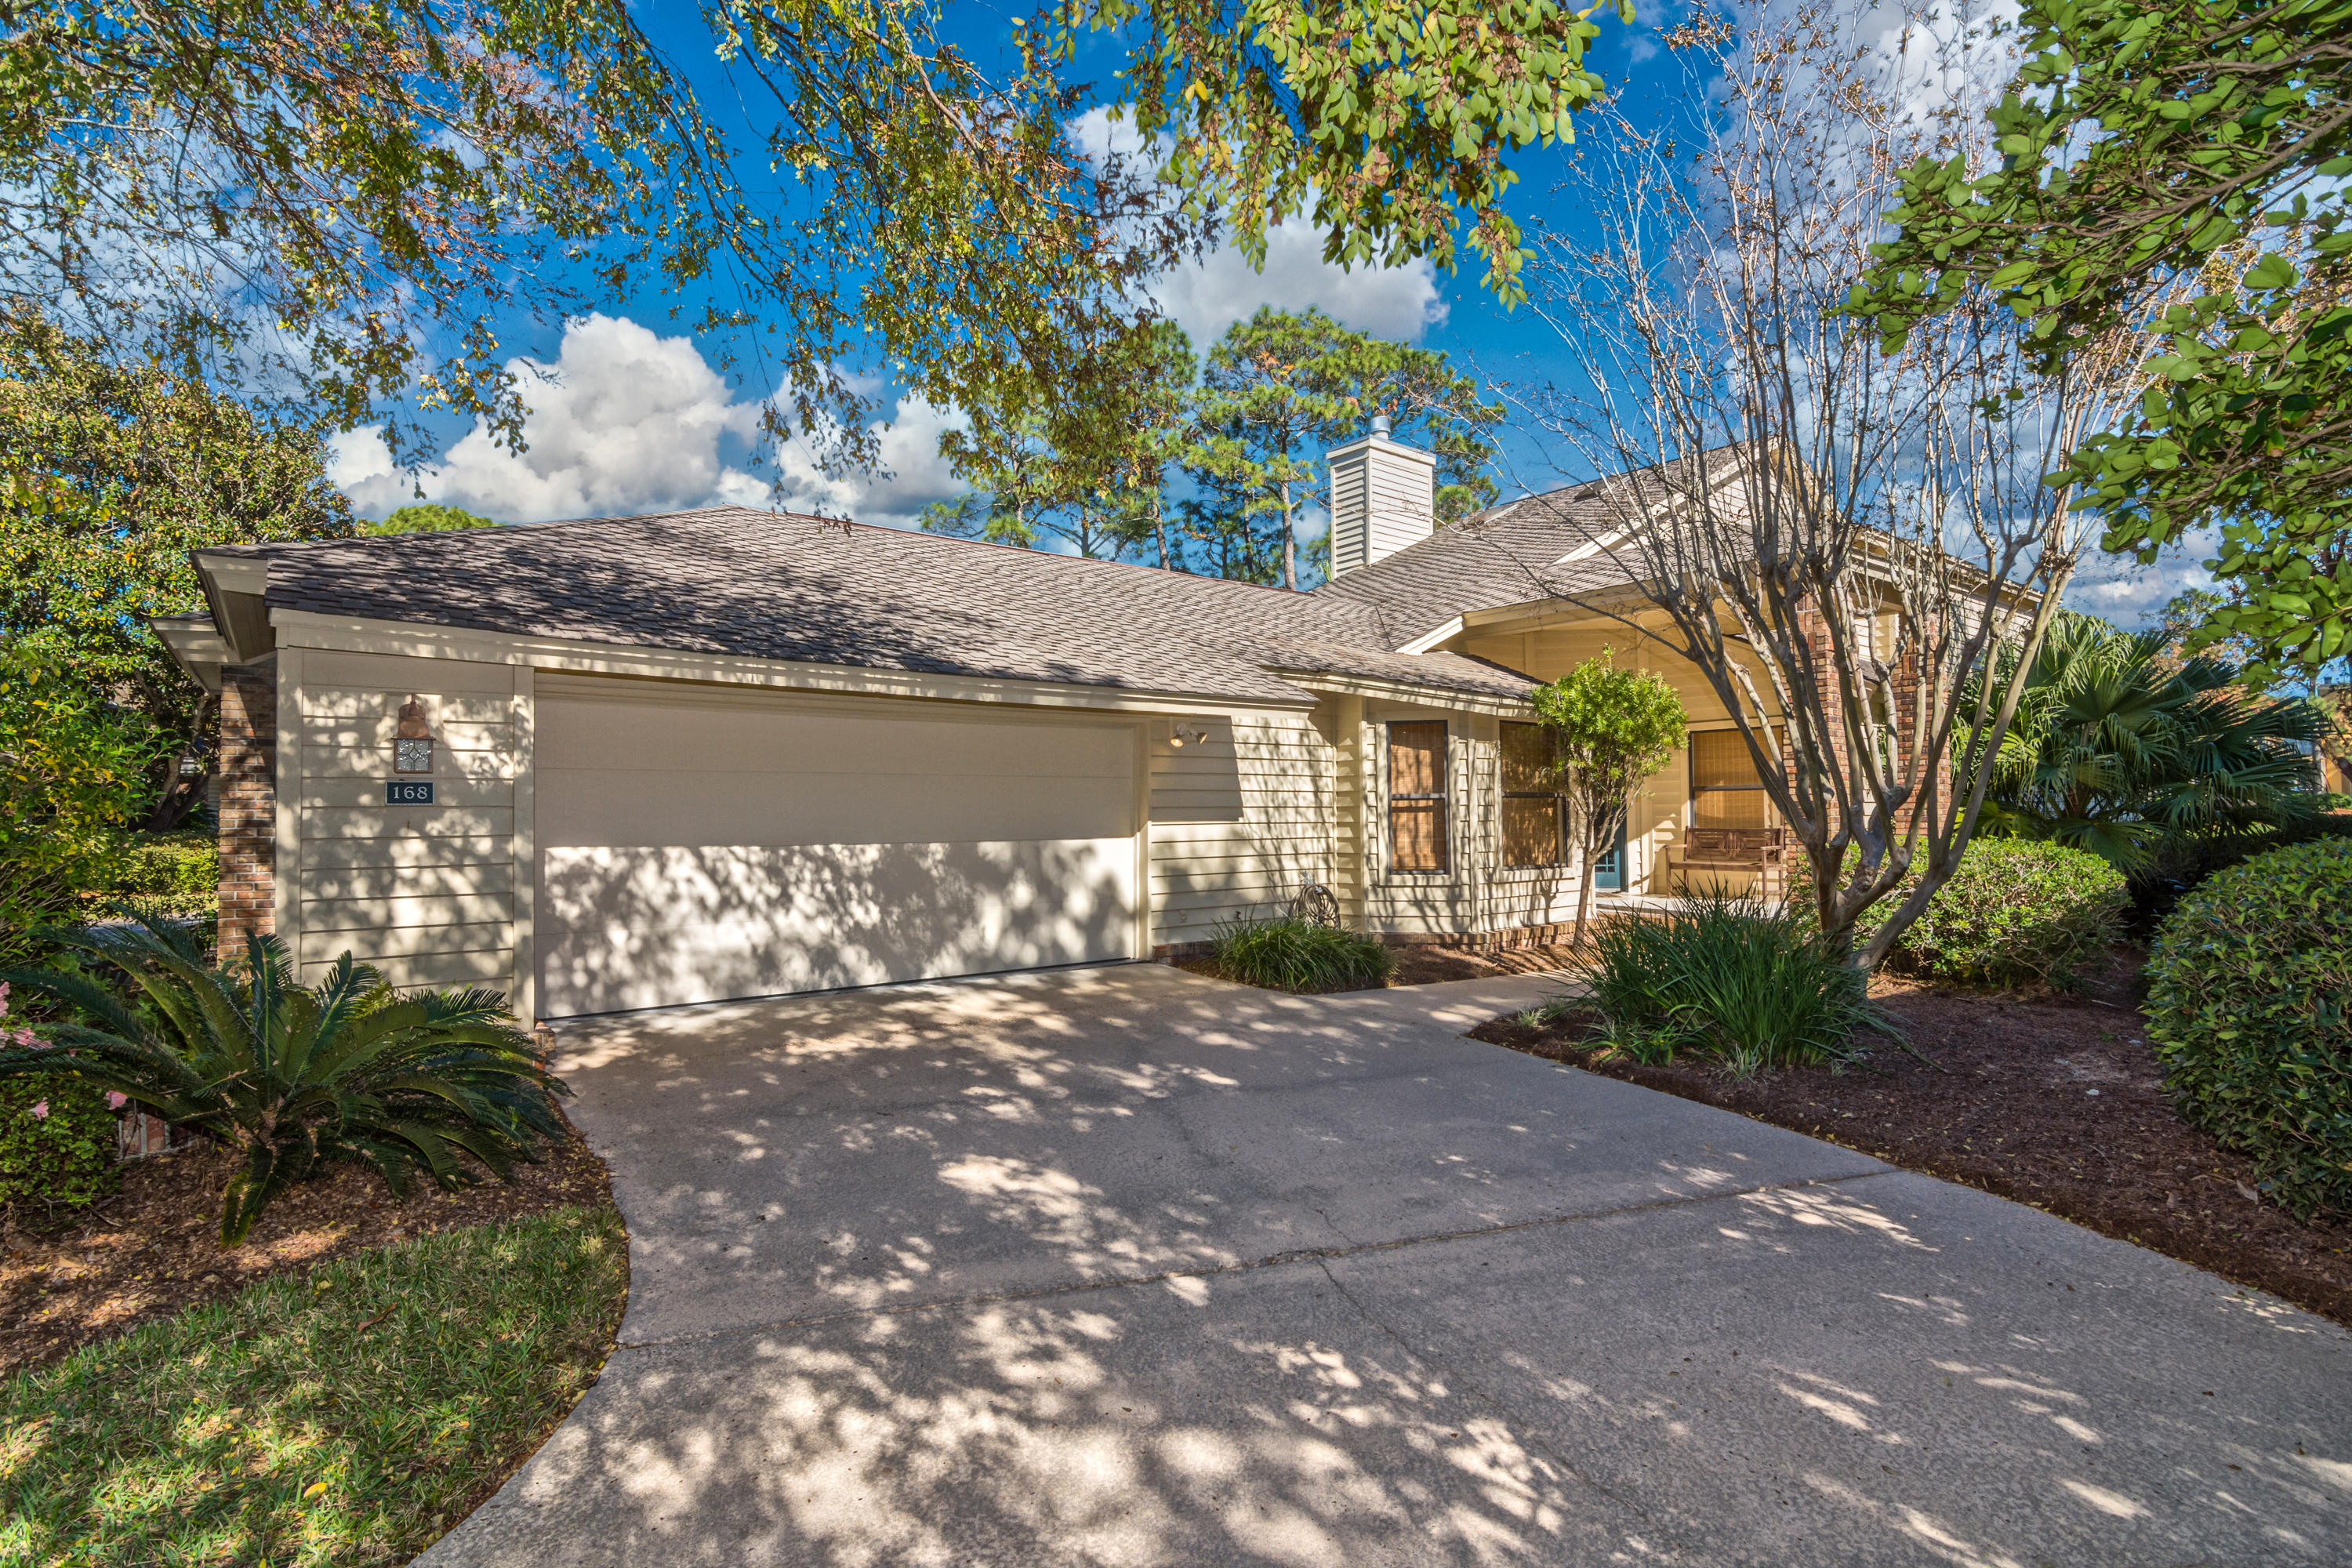 Photo of home for sale at 168 Cove, Miramar Beach FL